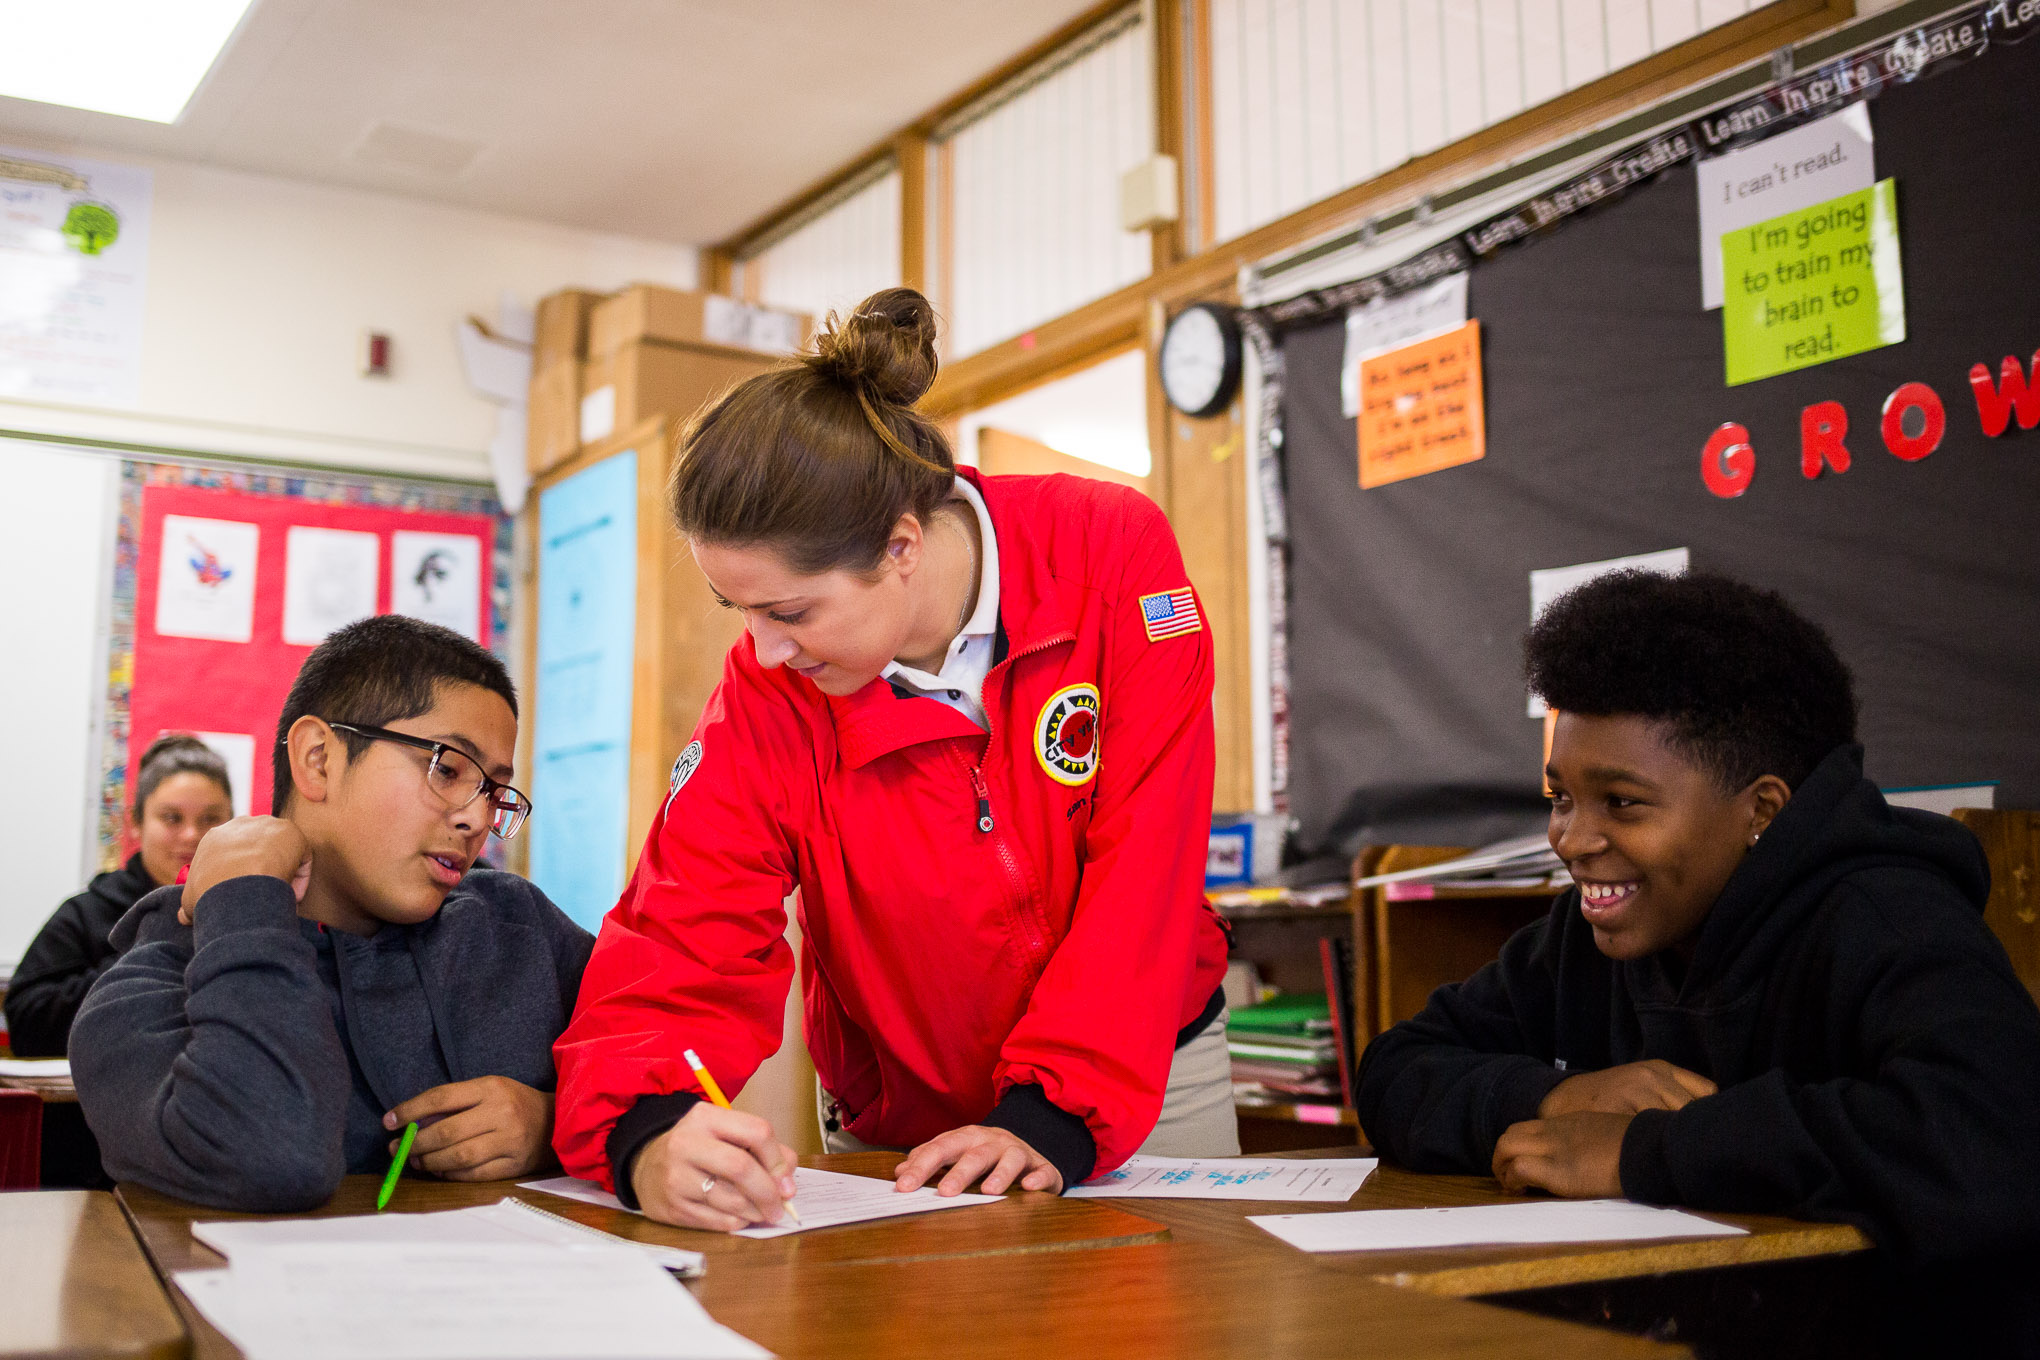 Jessica Rieger works with students during an English class.